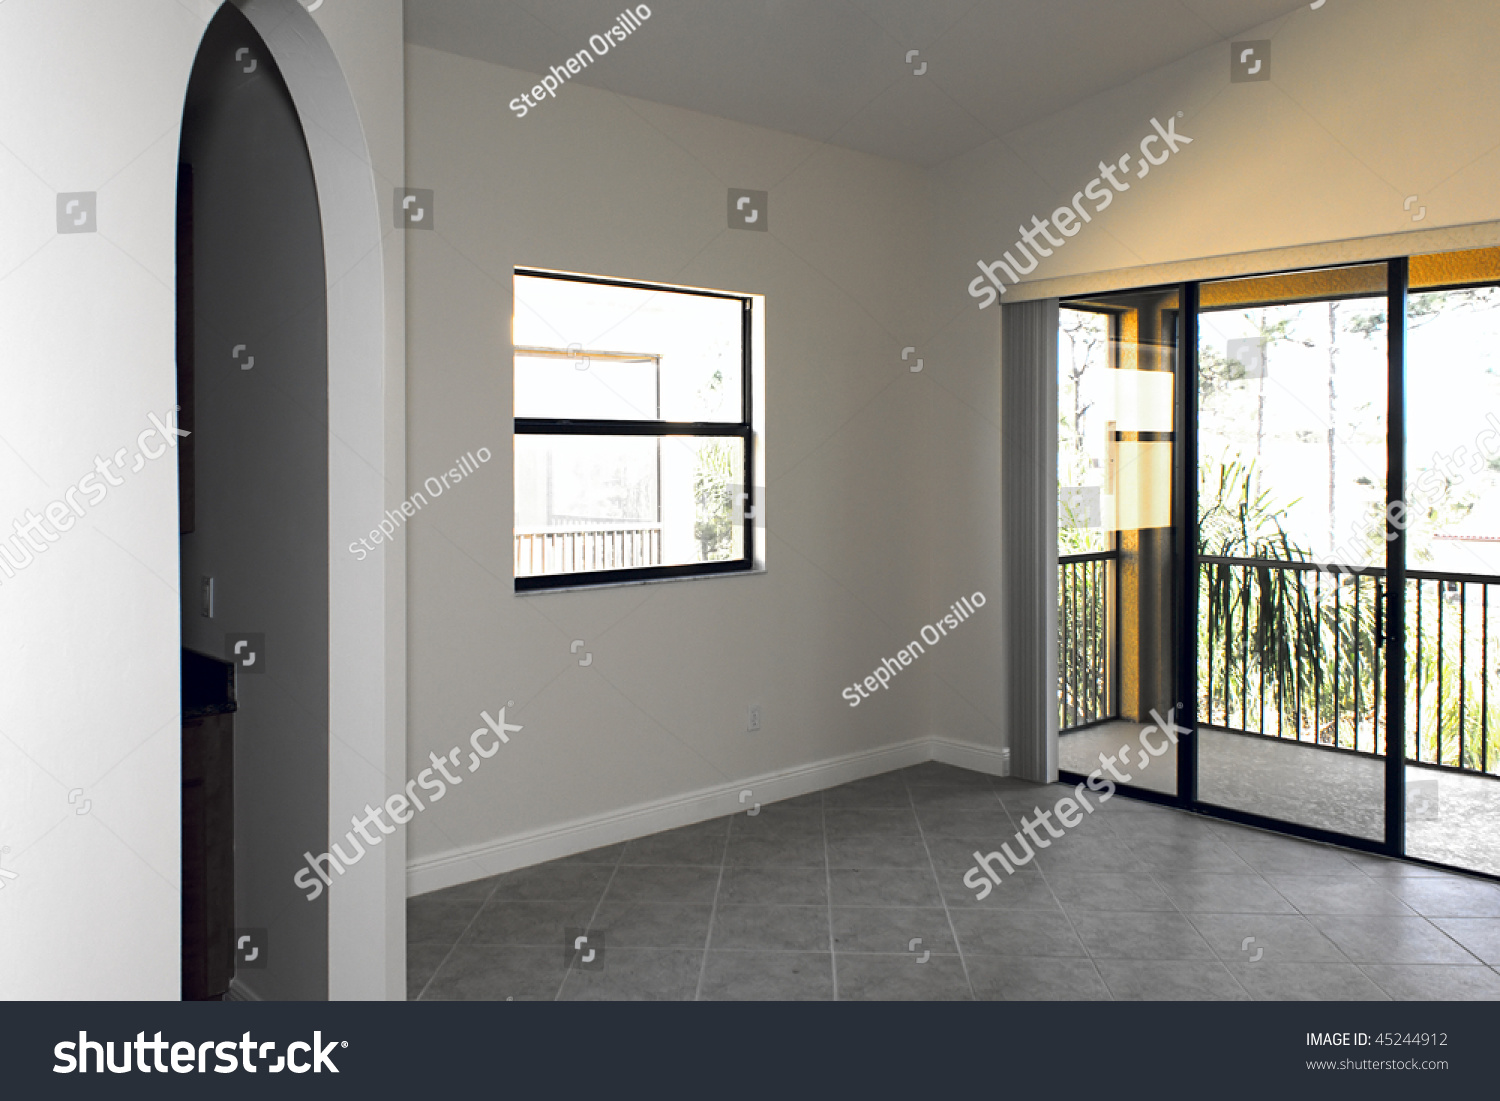 Large Empty Room With Arched Doorway, Window, And Sliding ...